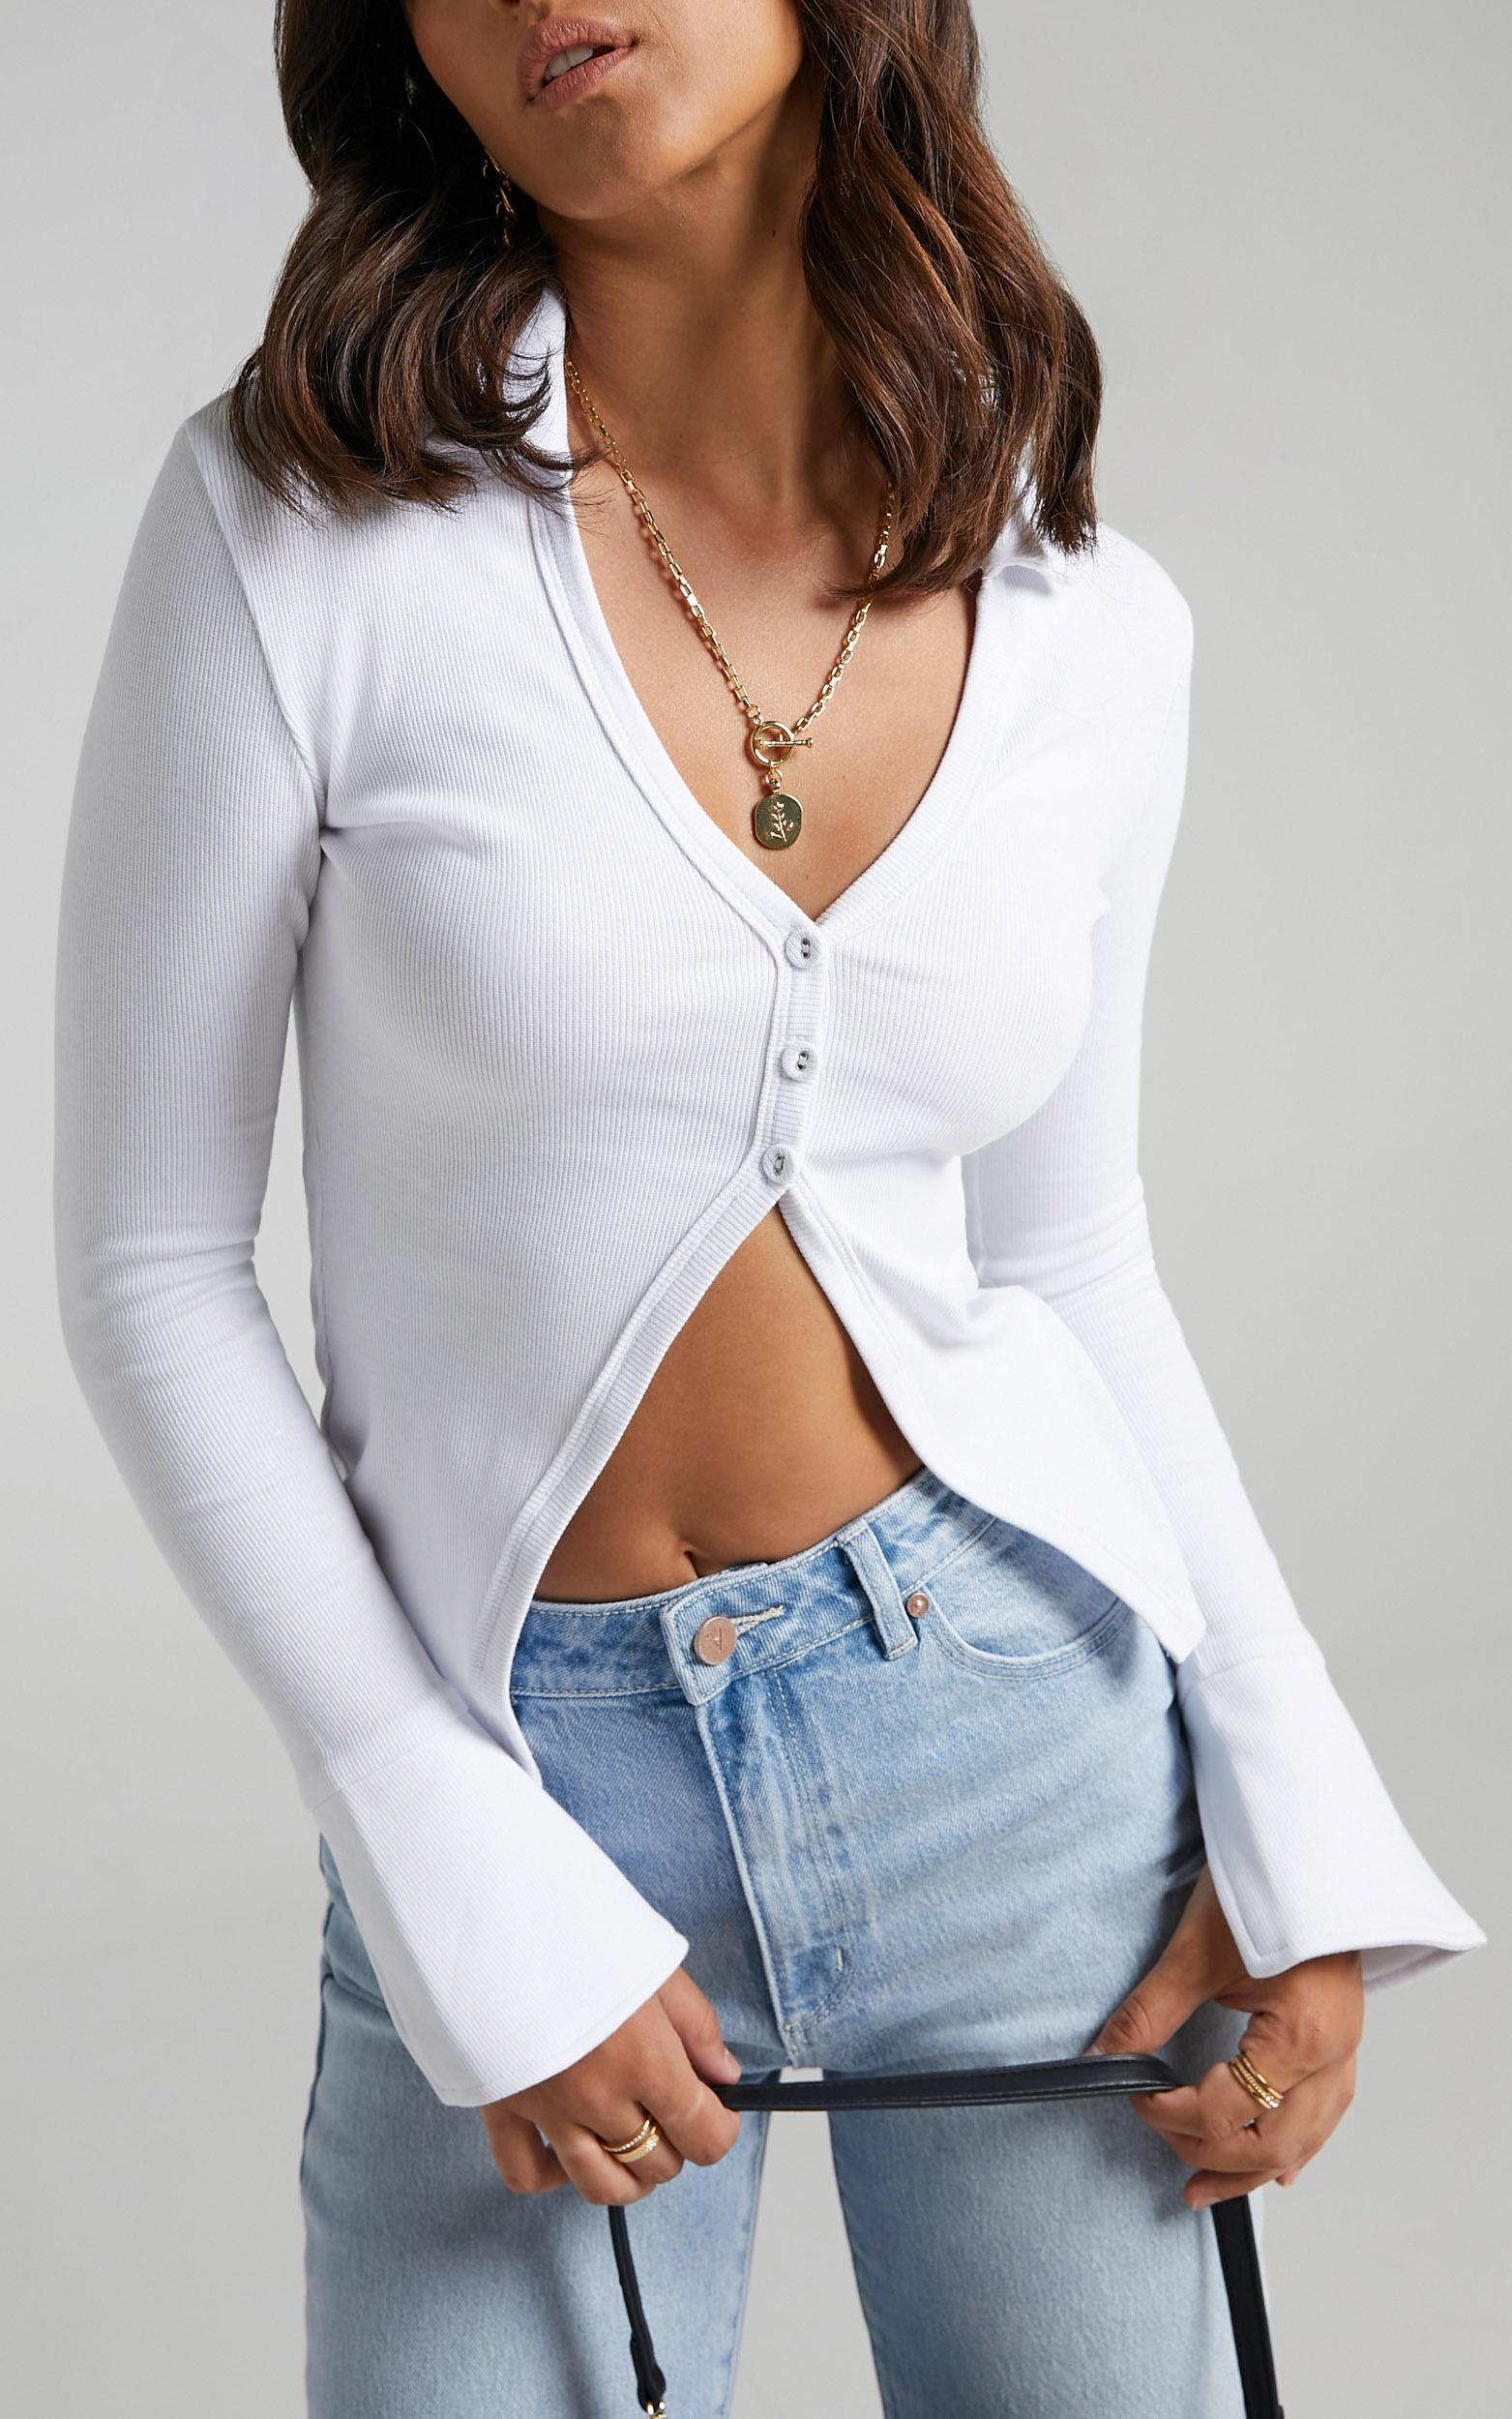 Amsu Top in White - 6 (XS), White, hi-res image number null